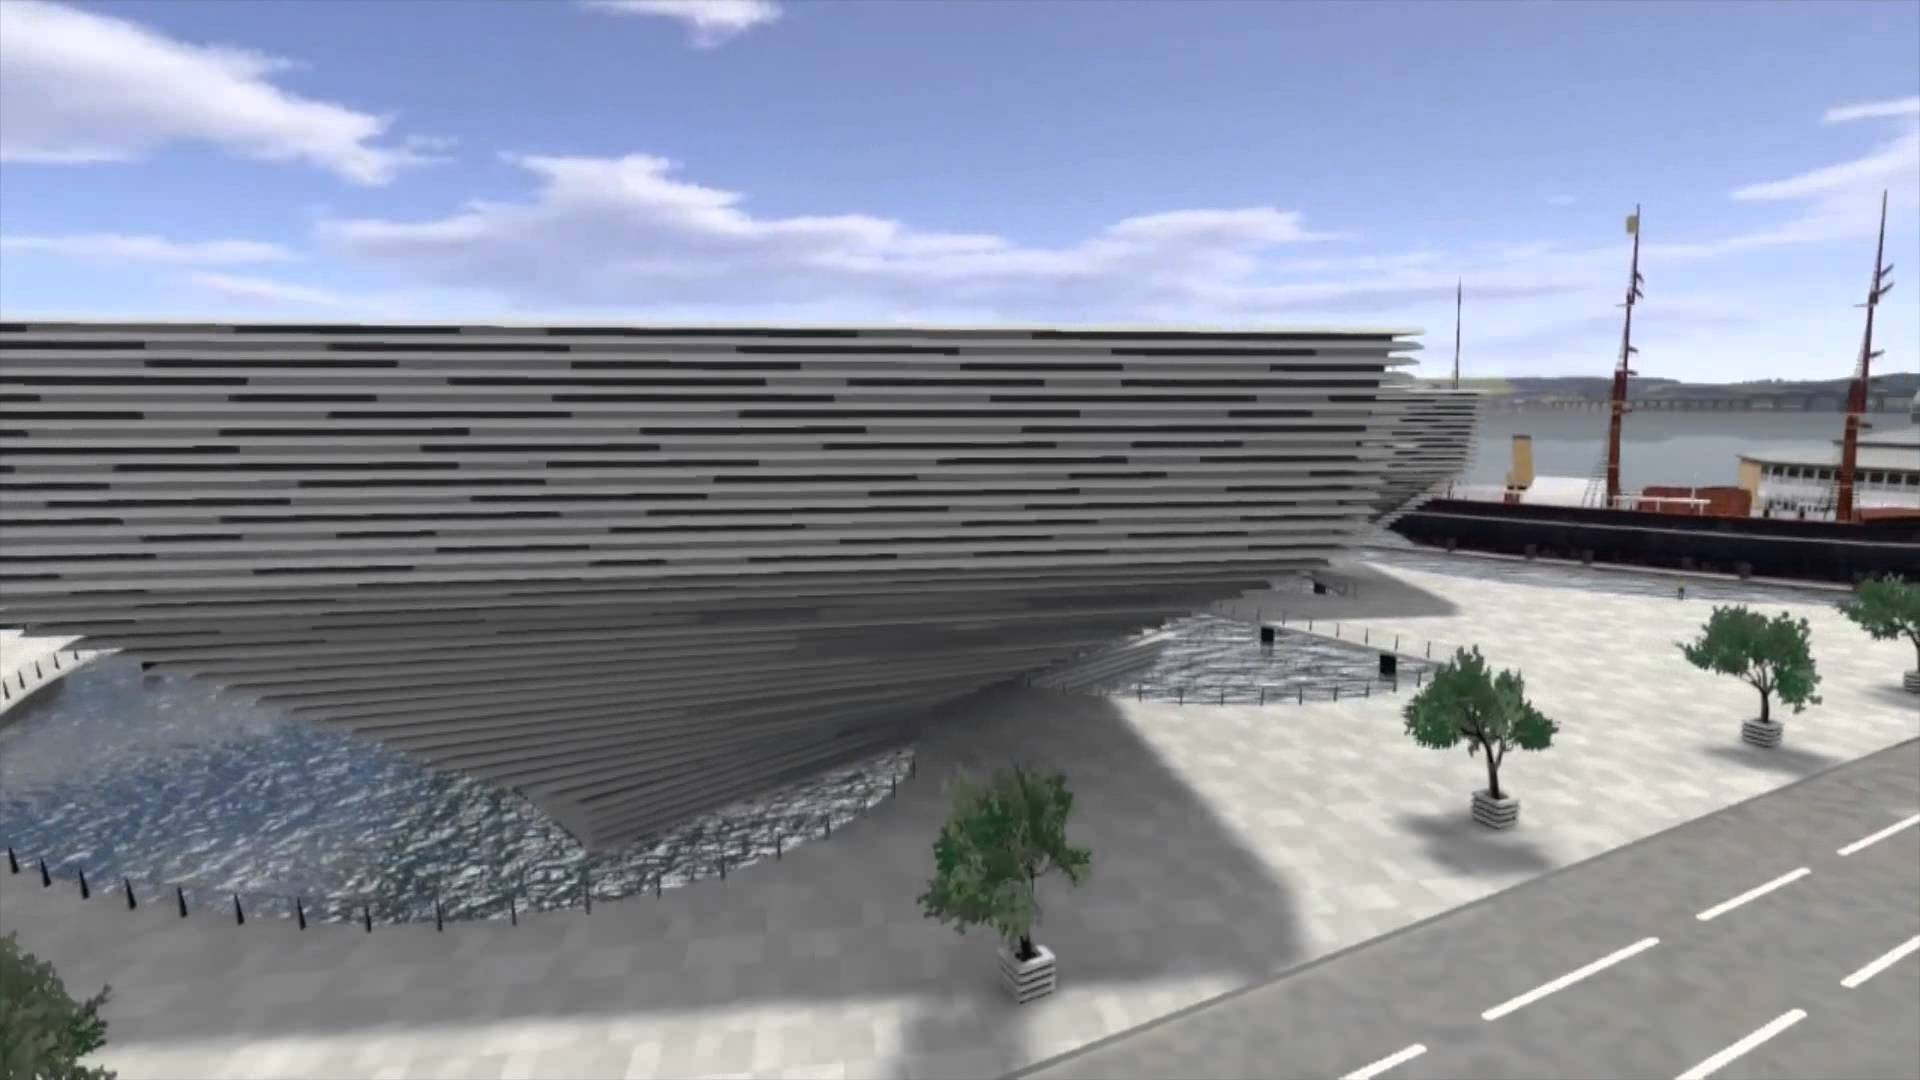 V&A Museum of Design Dundee, Construction work starts on V&A Museum of Design Dundee - YouTube